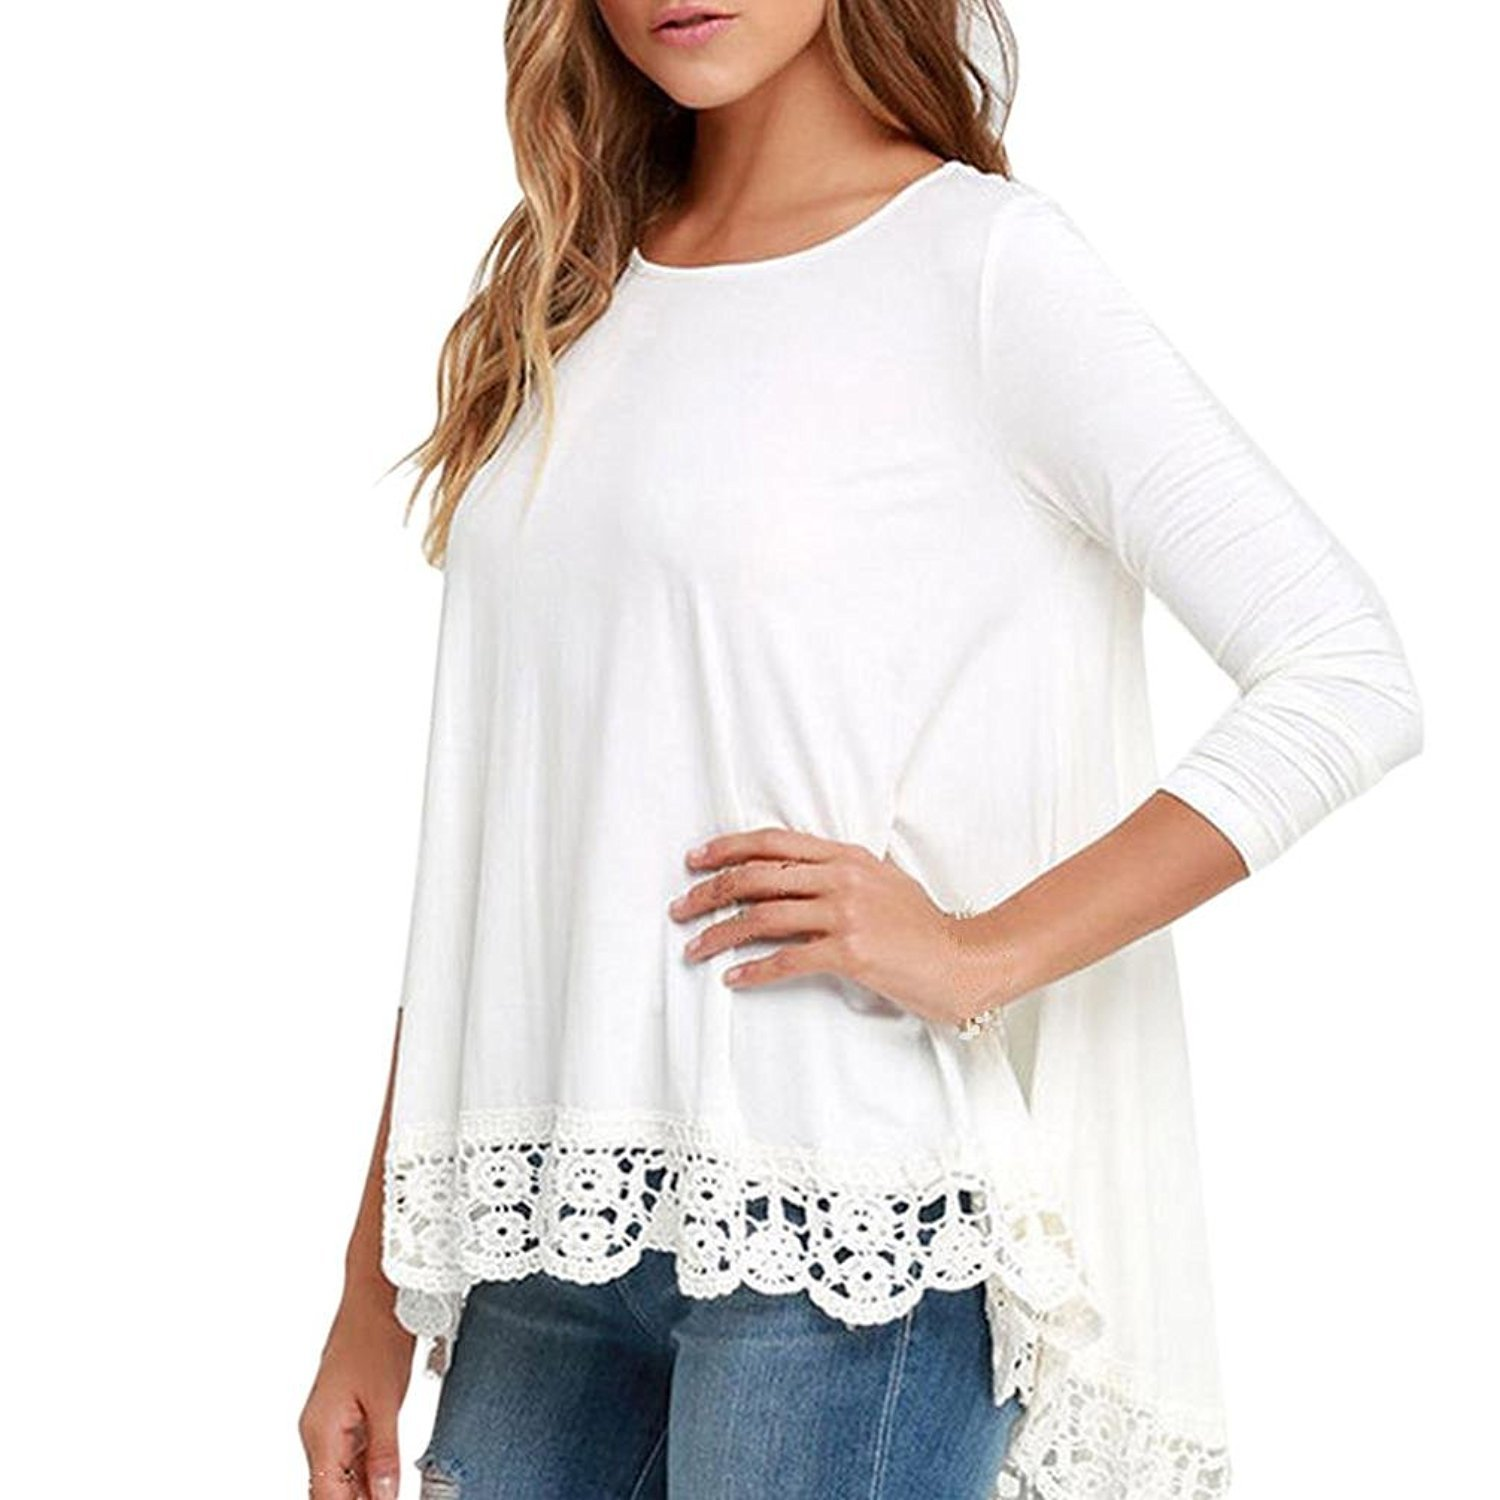 Fulltime Autumn/&Winter Clothing, TM Womens Lace Long Sleeve Casual Blouse